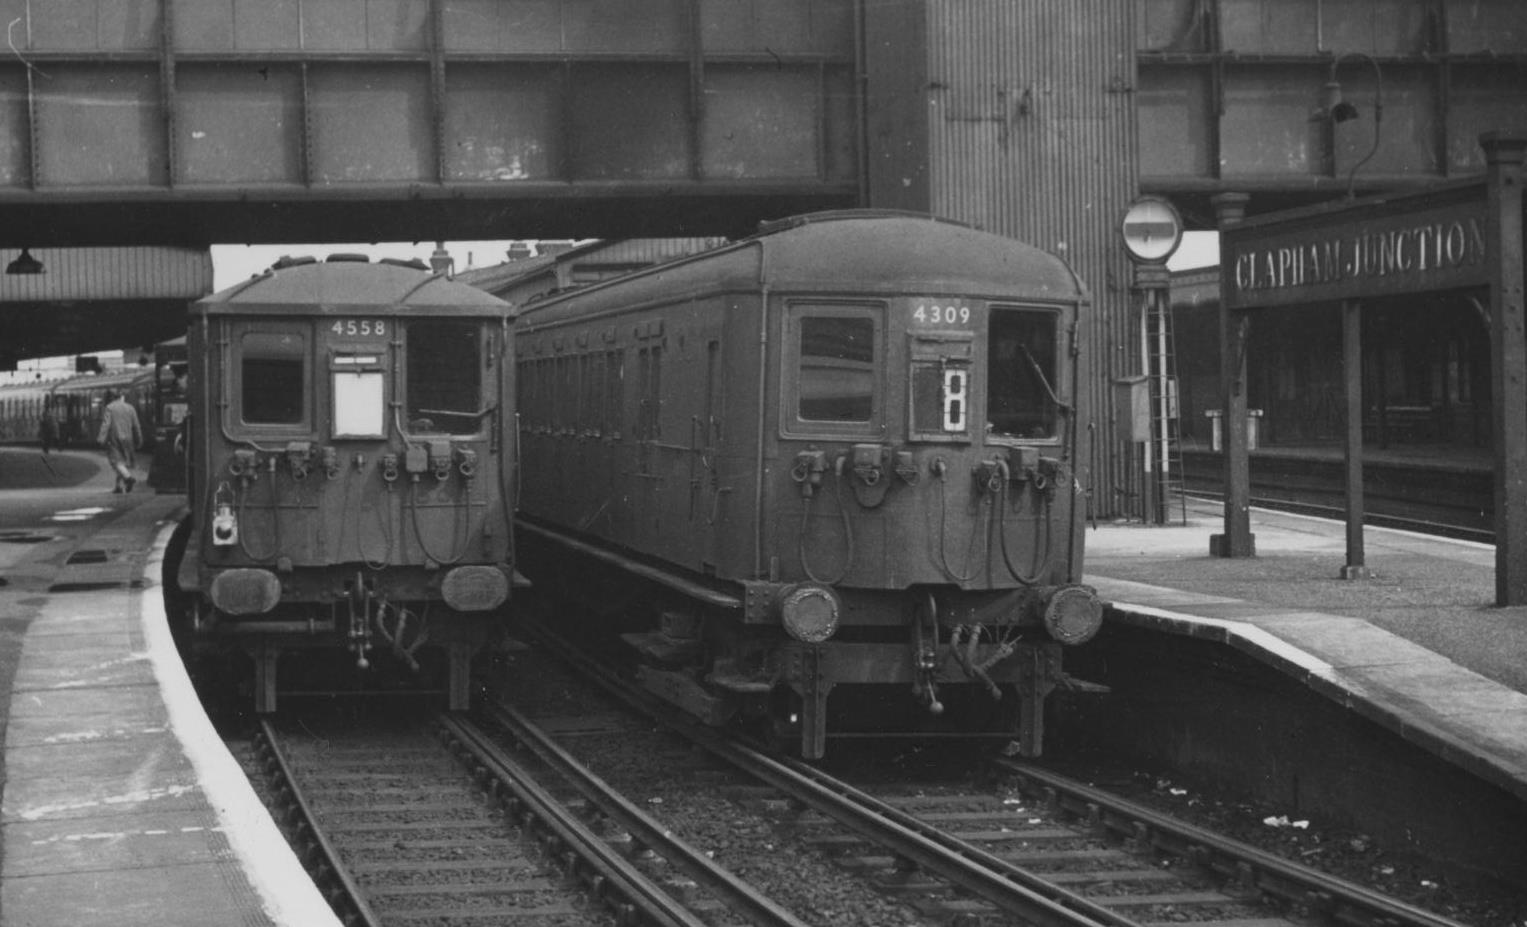 SUBs at Clapham Junction 001